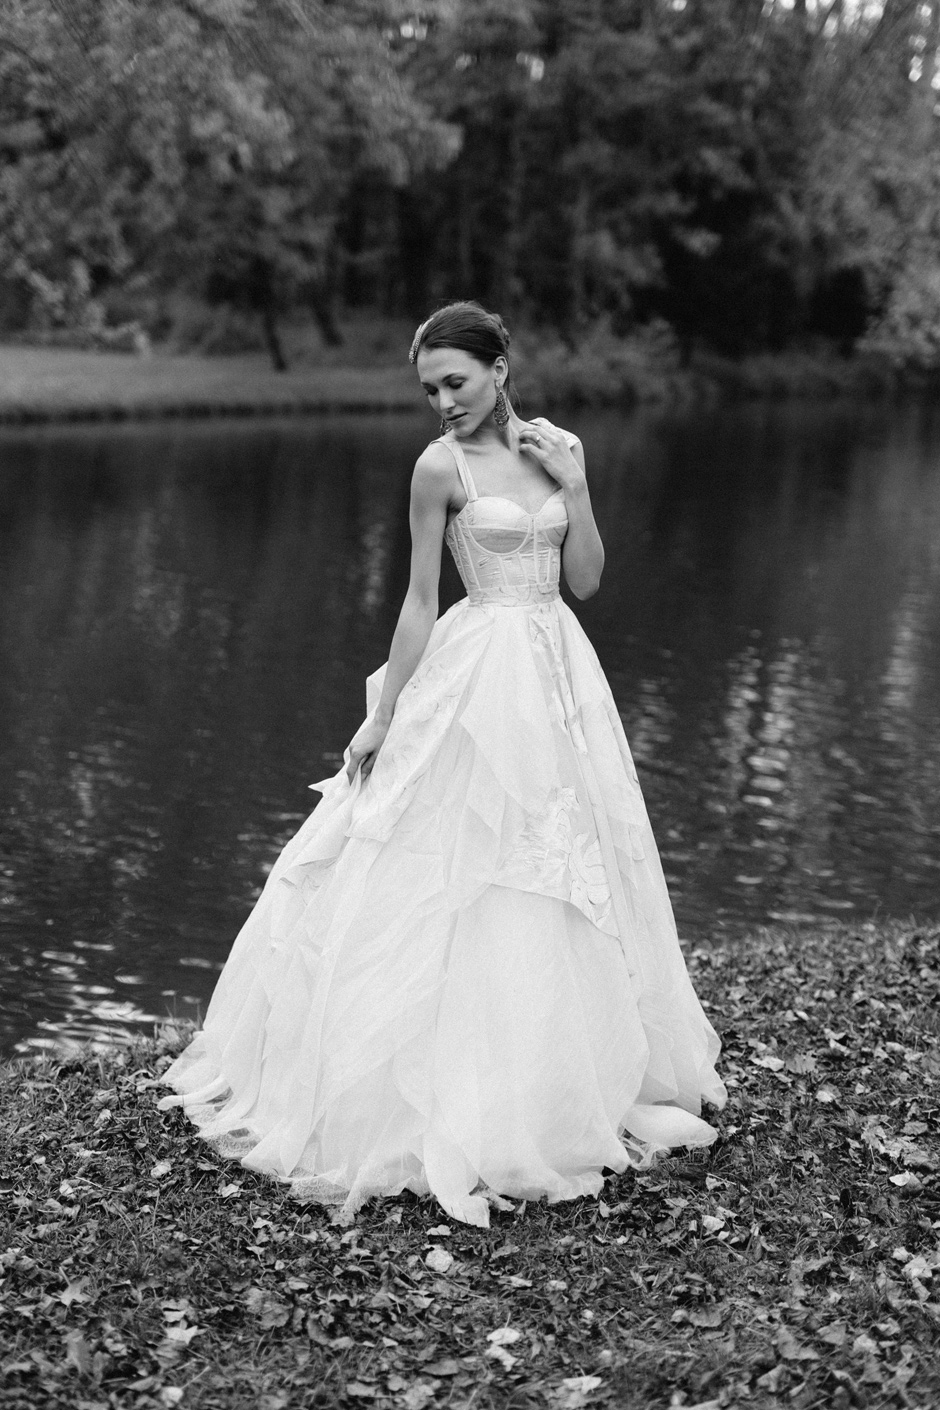 laxenburg-wedding-photographer-037